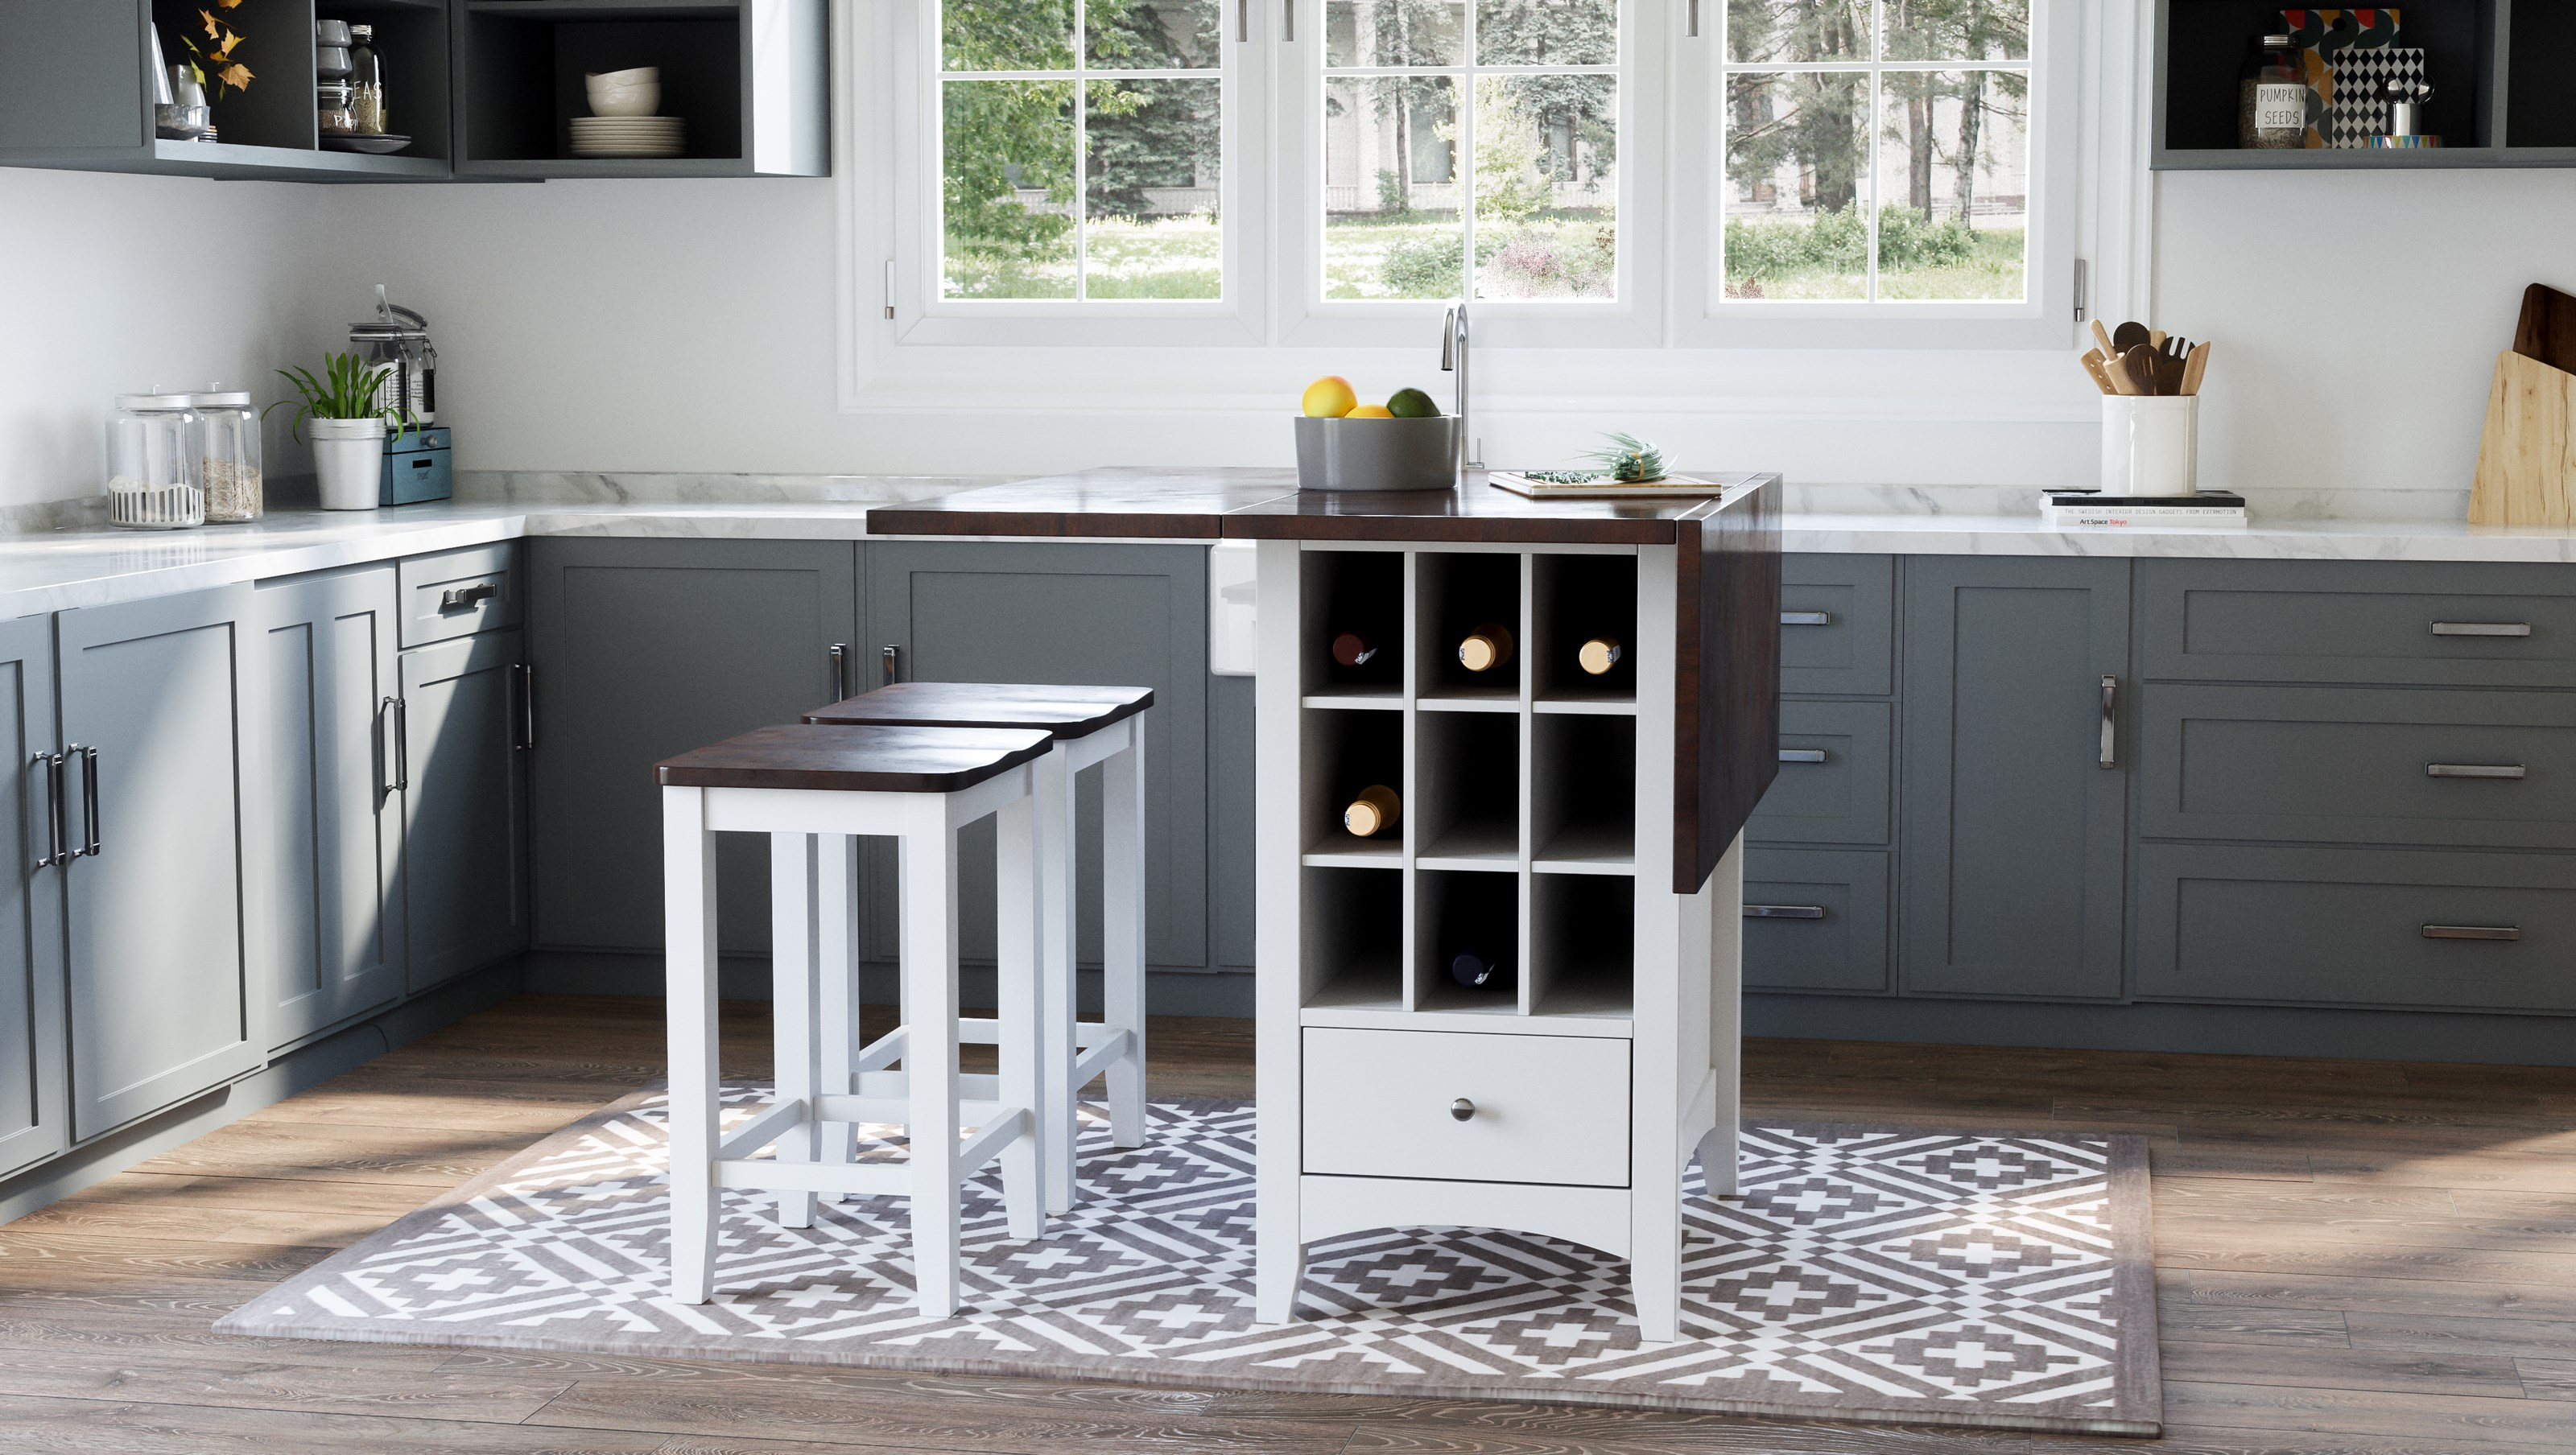 Asbury Park 3-Piece Counter Height Table and Stool Set by VFM Signature at Virginia Furniture Market